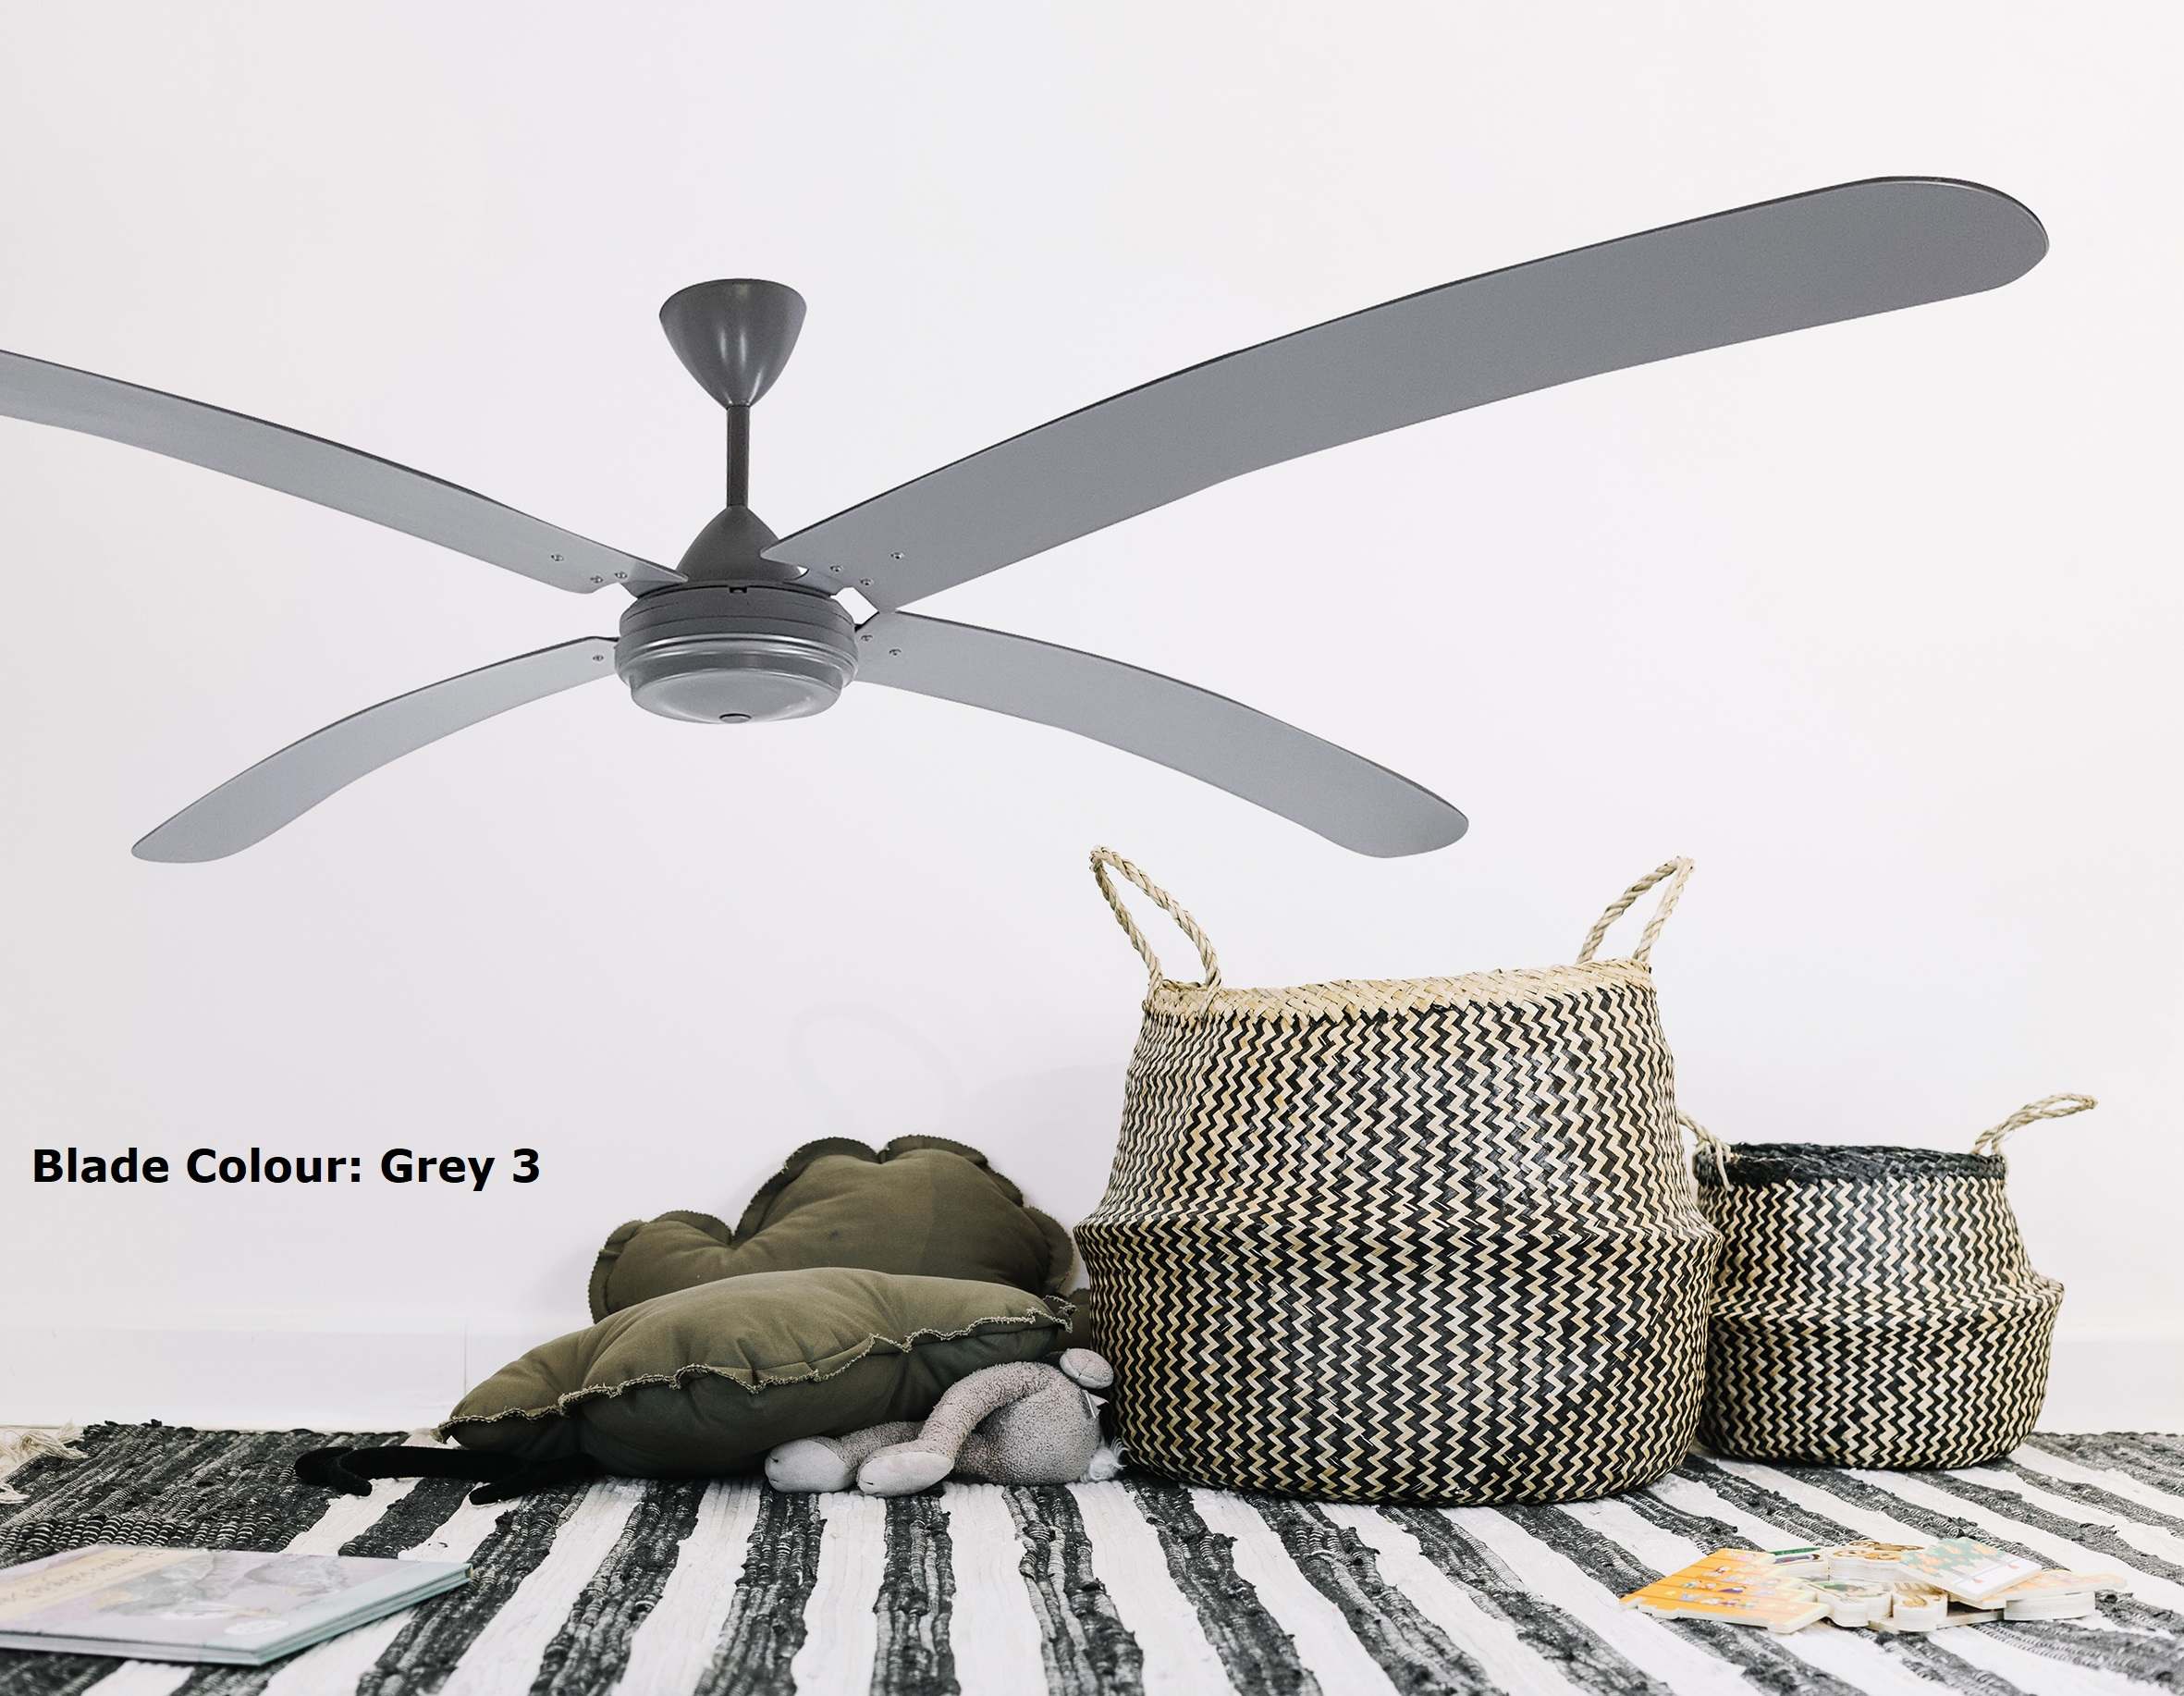 palm motor product ceiling image view high fans fan breeze solent leaf